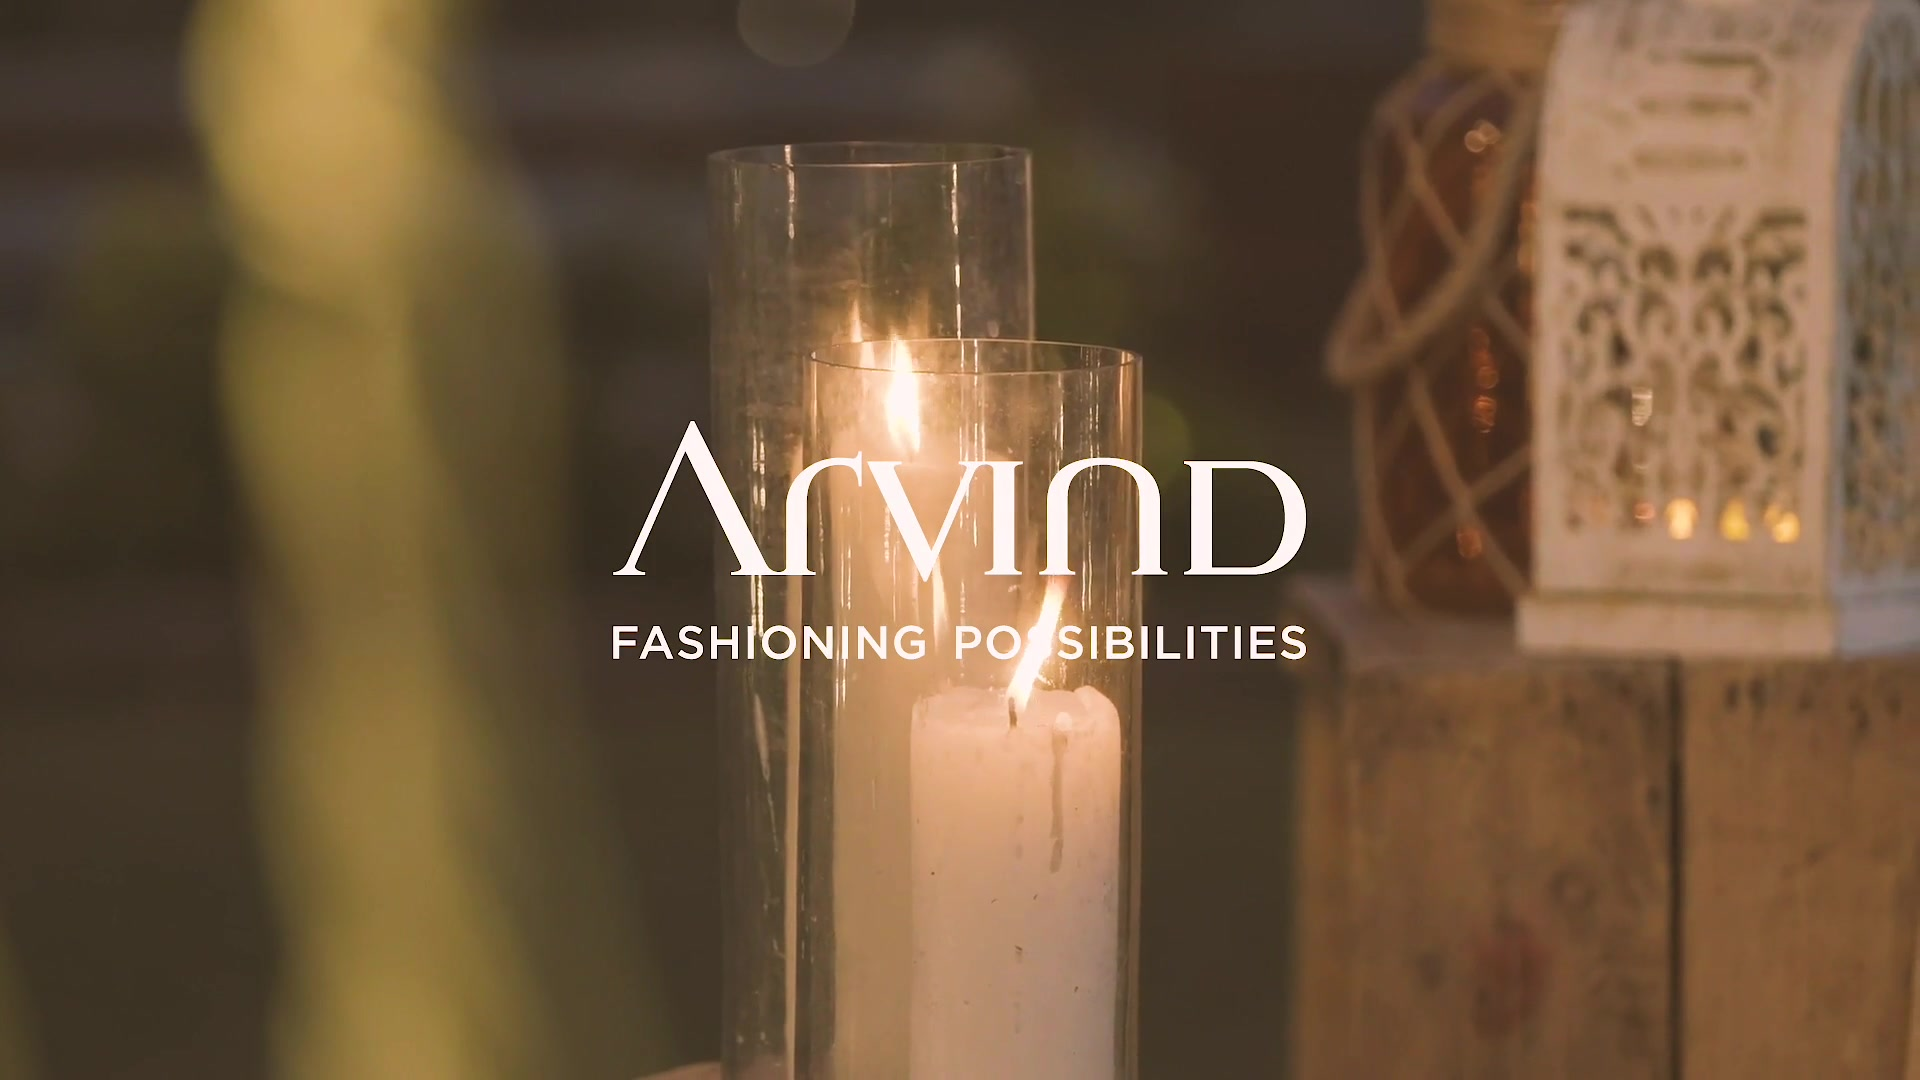 Make unforgettable memories this season with the Summer Wedding Collection by Arvind.   Please take all the precautions. Stay safe and celebrate.  #Arvind #Summer #WeddingCollection  #Night #Stars #Memories  #Groom #Menswear #StyleUpNow  #Dapper #FashioningPossibilities